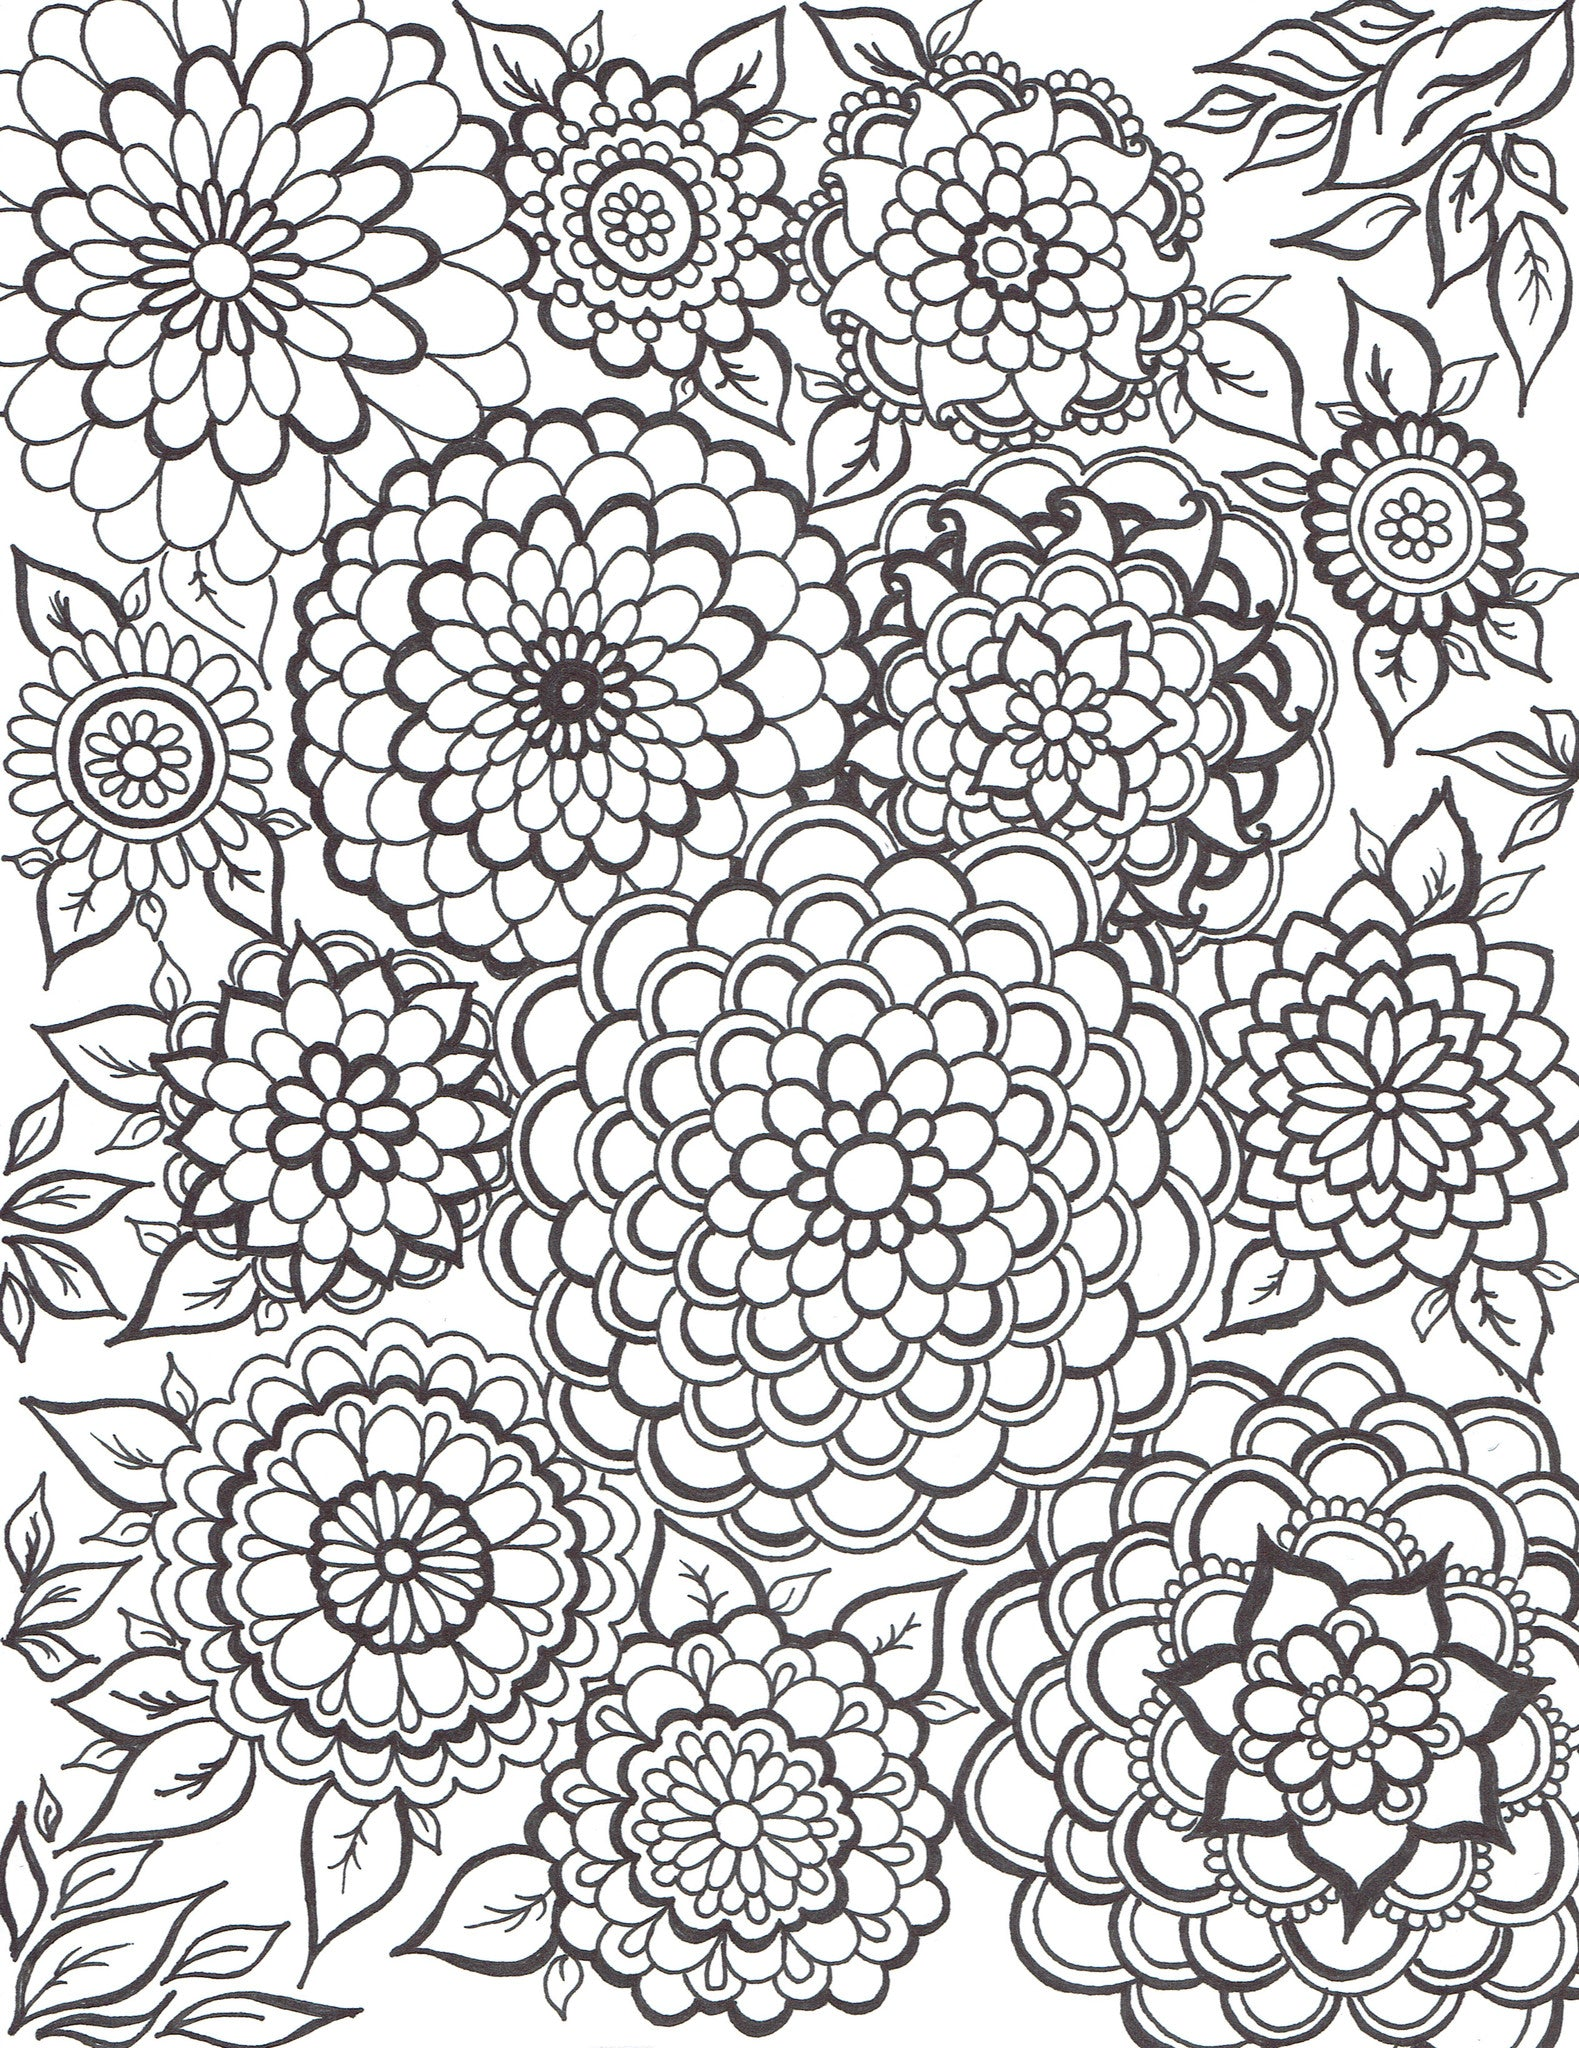 Invasion of Mandala Flowers - You-Color